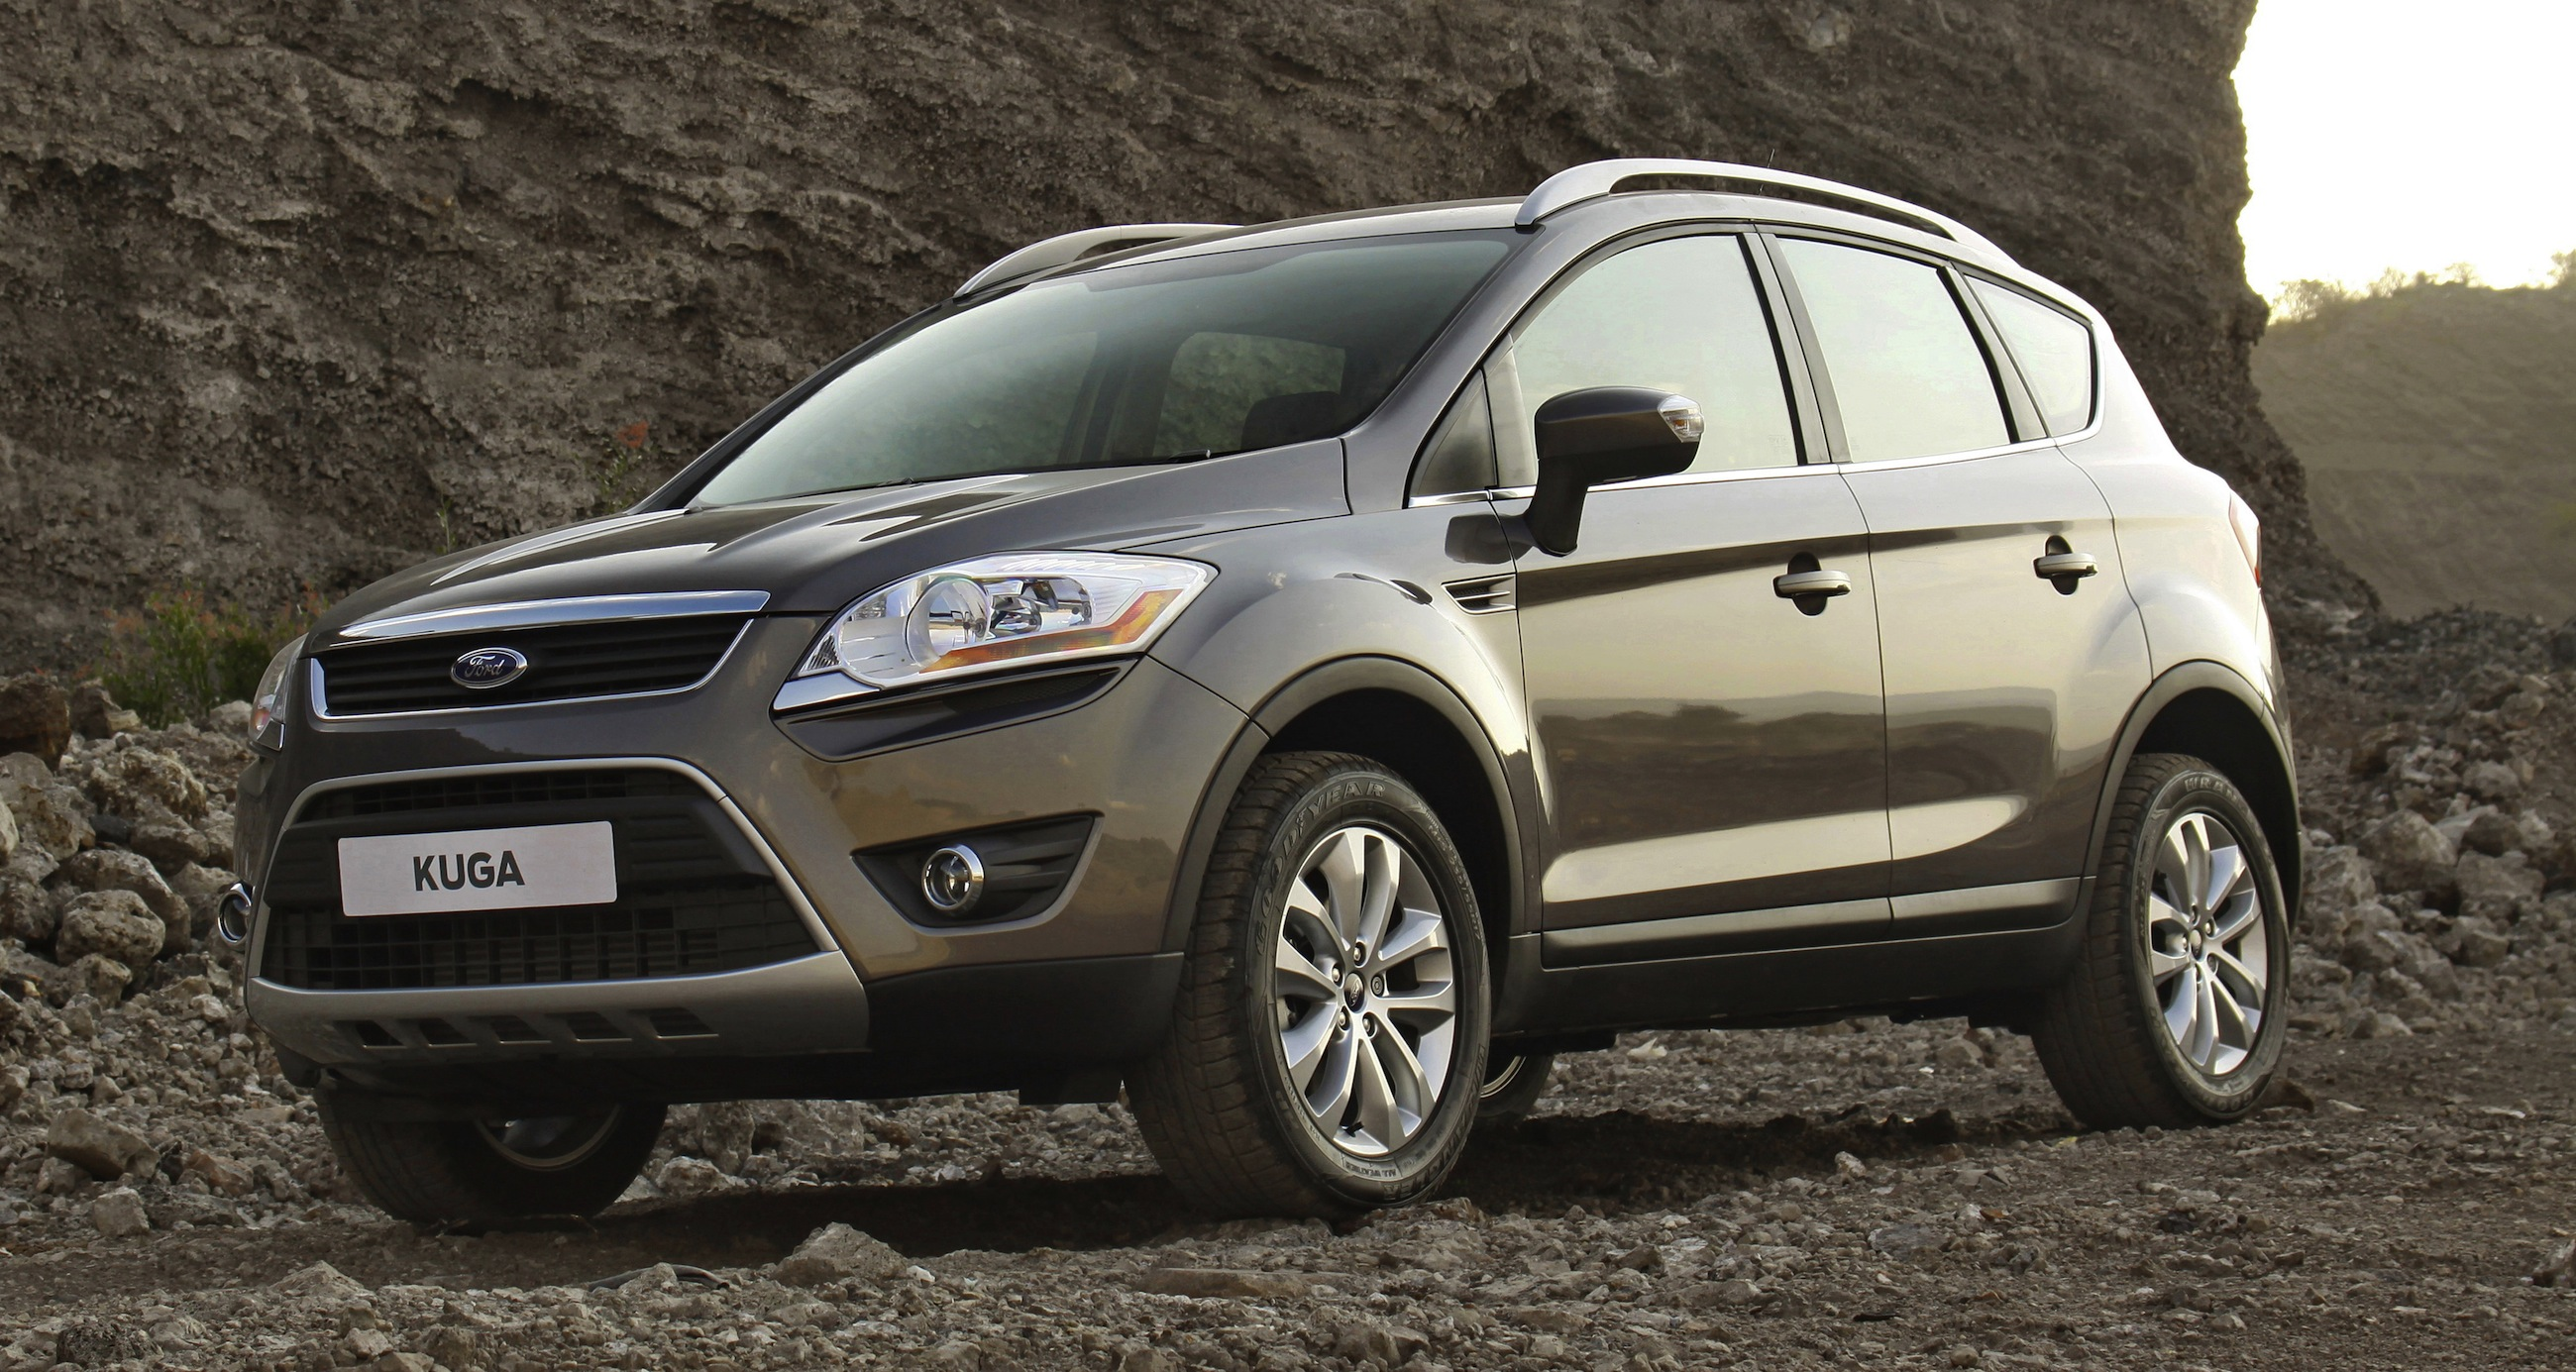 ford kuga new compact suv launched photos 1 of 5